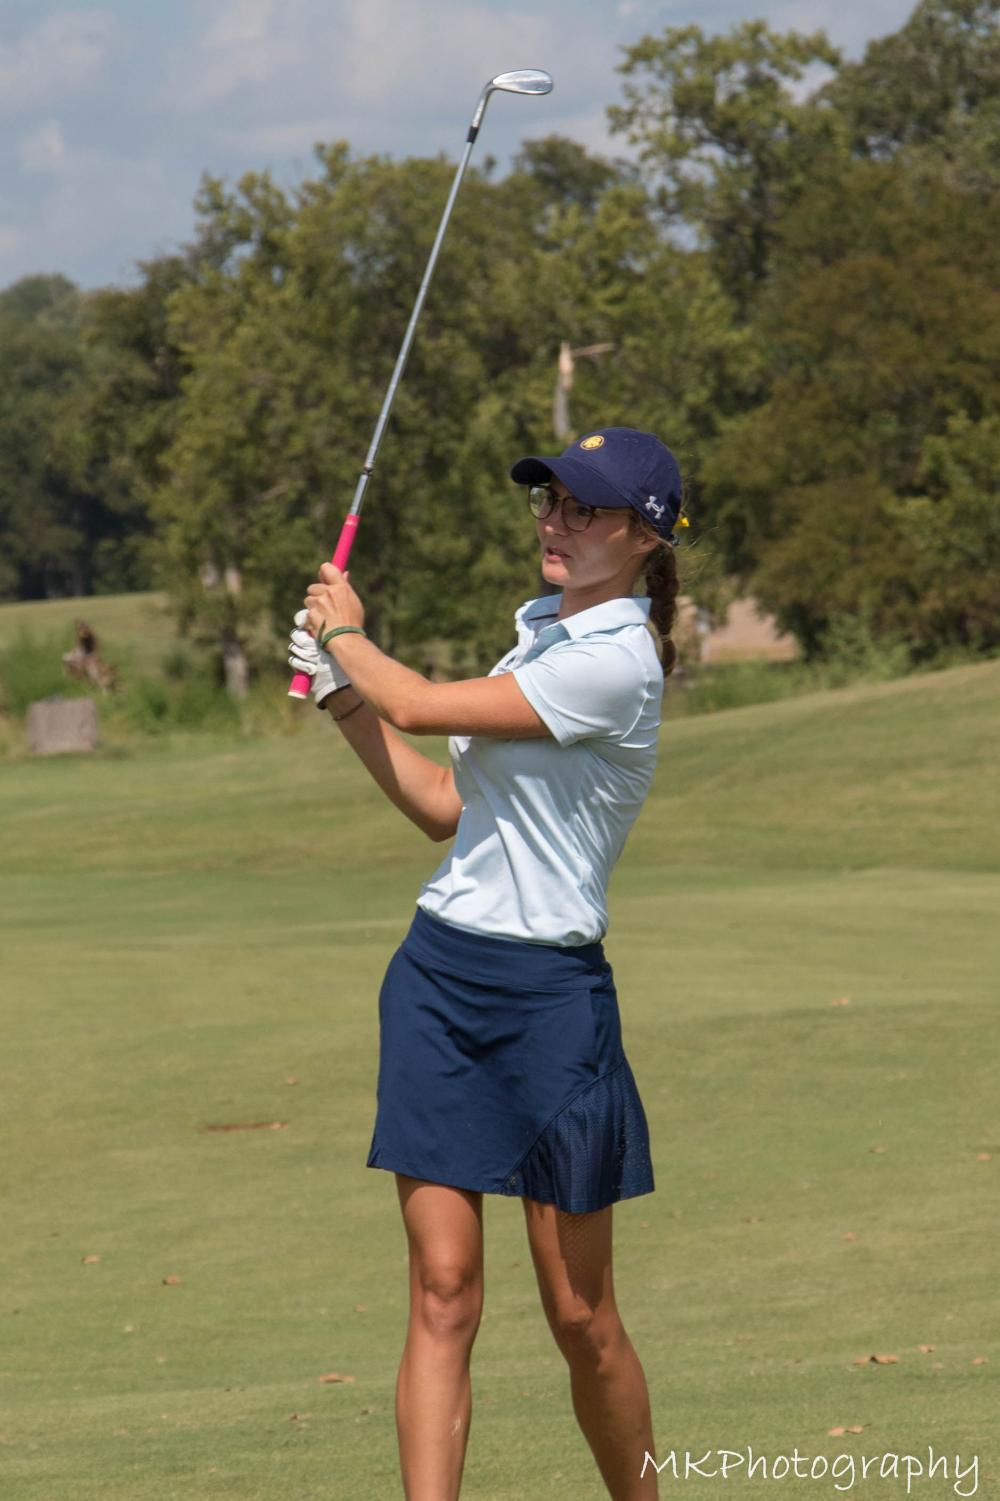 Sophie-Charlott+Hempel+pitches+a+wedge+shot+on+the+18th+hole+at+the+Texan+Invitational+%7C+Tyler+McDonough